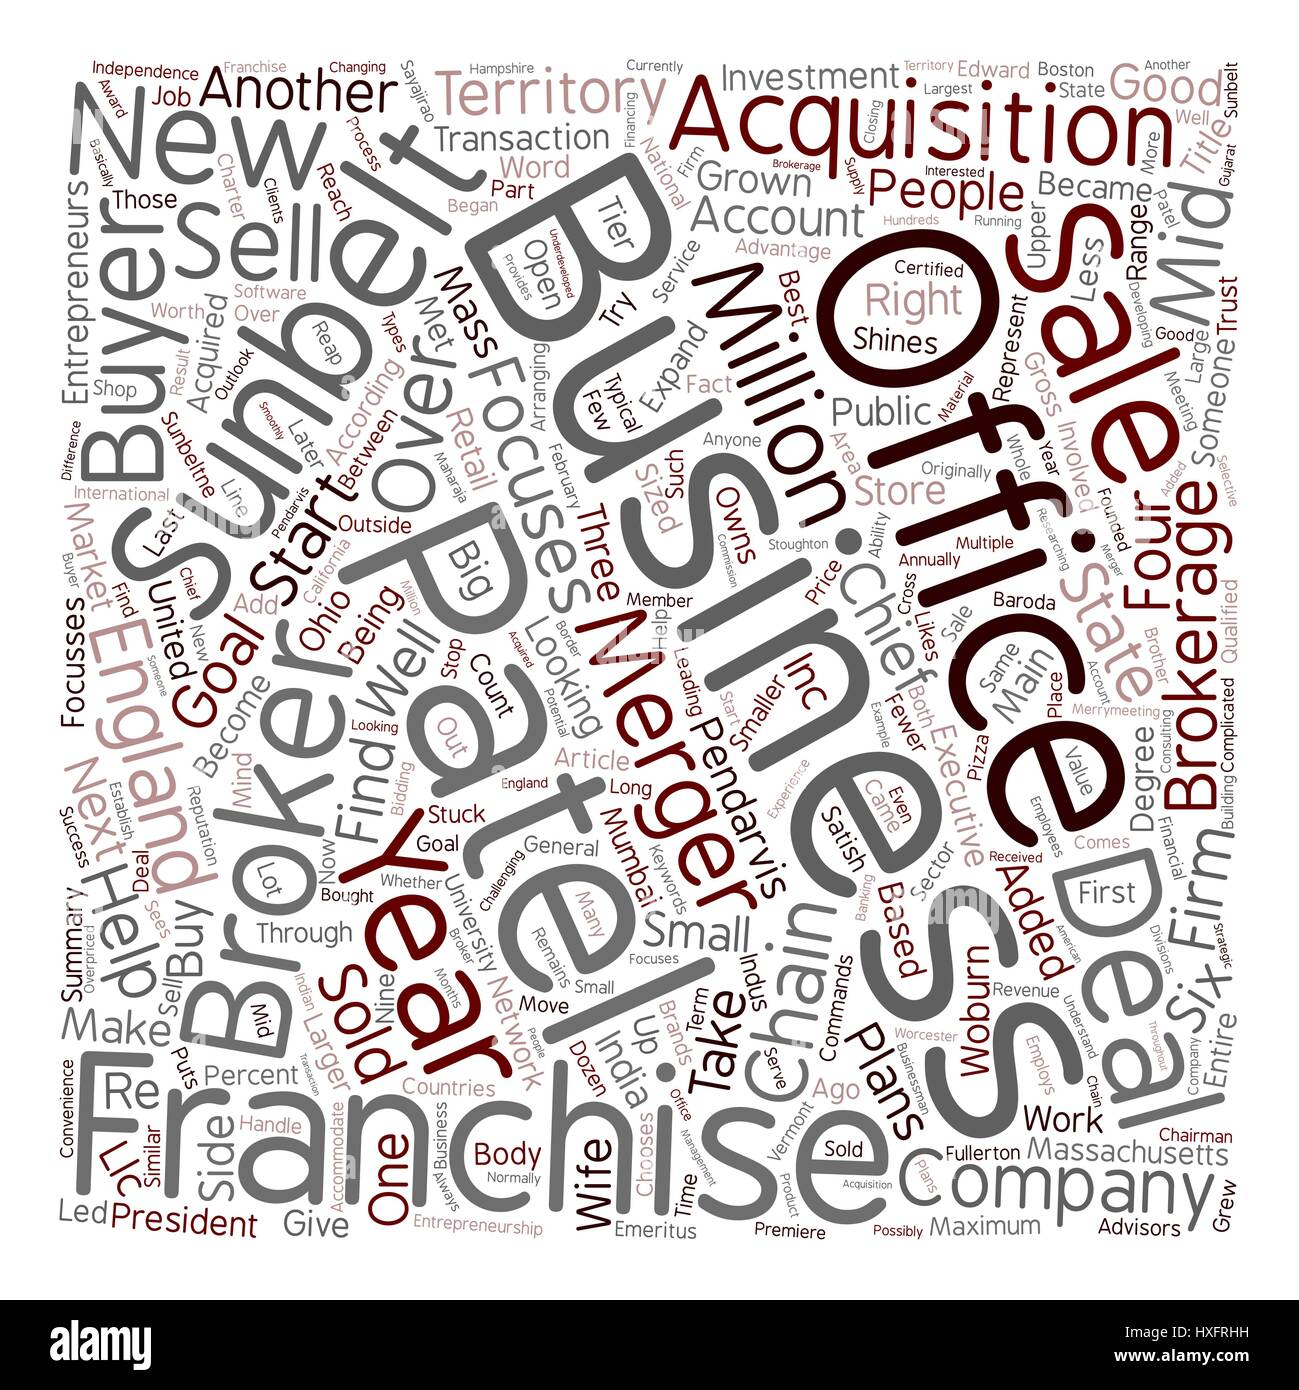 Patel shines with Sunbelt business brokerage chain text background wordcloud concept - Stock Image